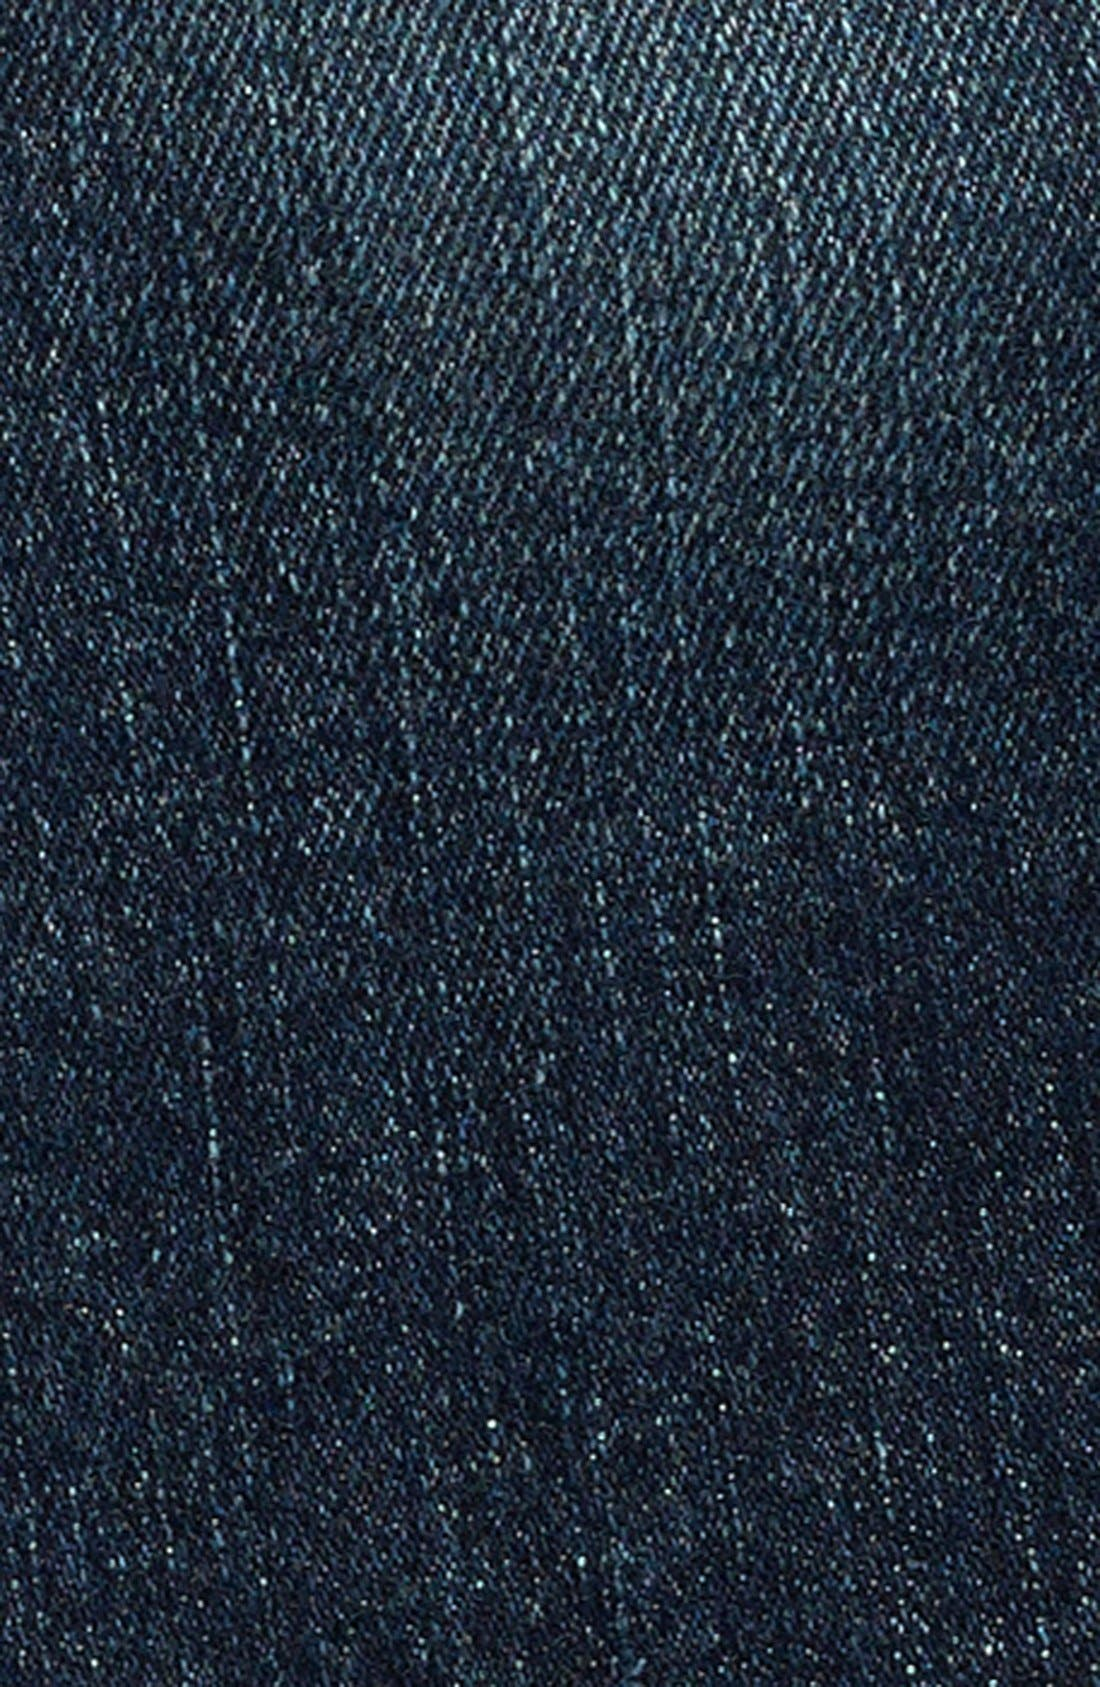 Alternate Image 3  - True Religion Brand Jeans 'Geno' Relaxed Slim Fit Classic Jeans (Baby Boys) (Online Exclusive)